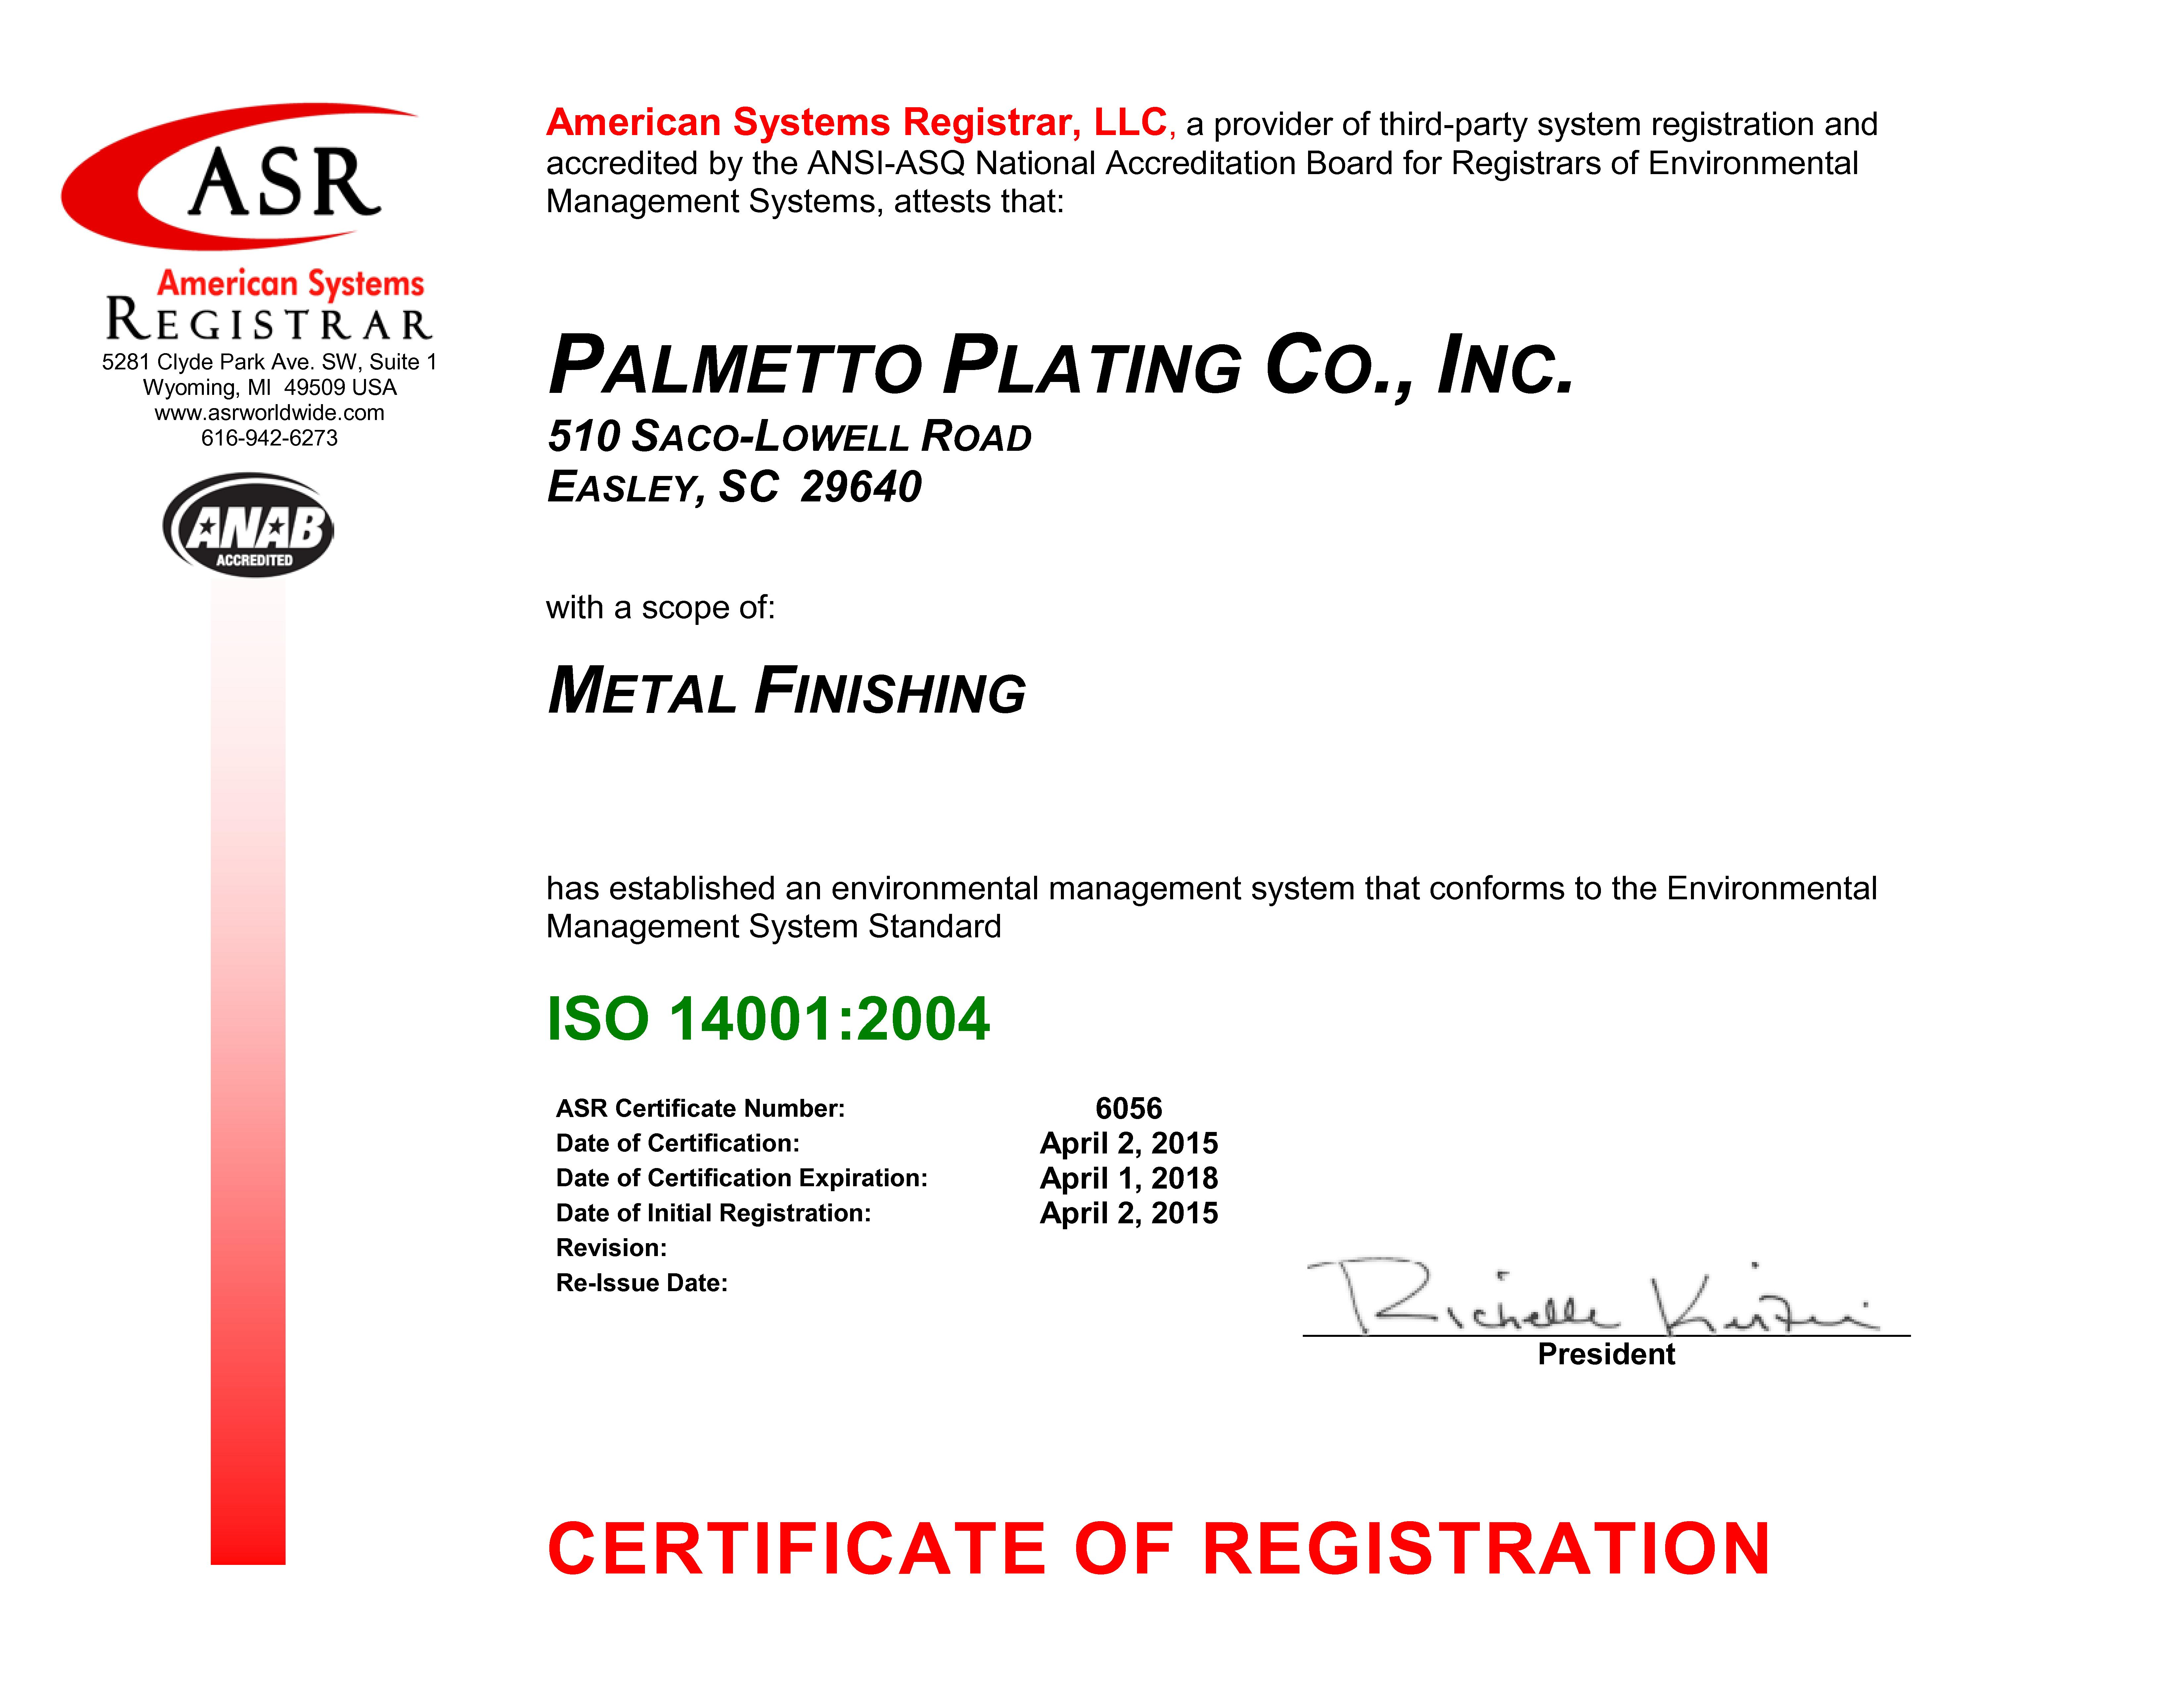 Iso 14001 2004 palmetto plating metal finishing services 6056 palmetto plating iso 14001 certificate apr 2015 signed xflitez Choice Image